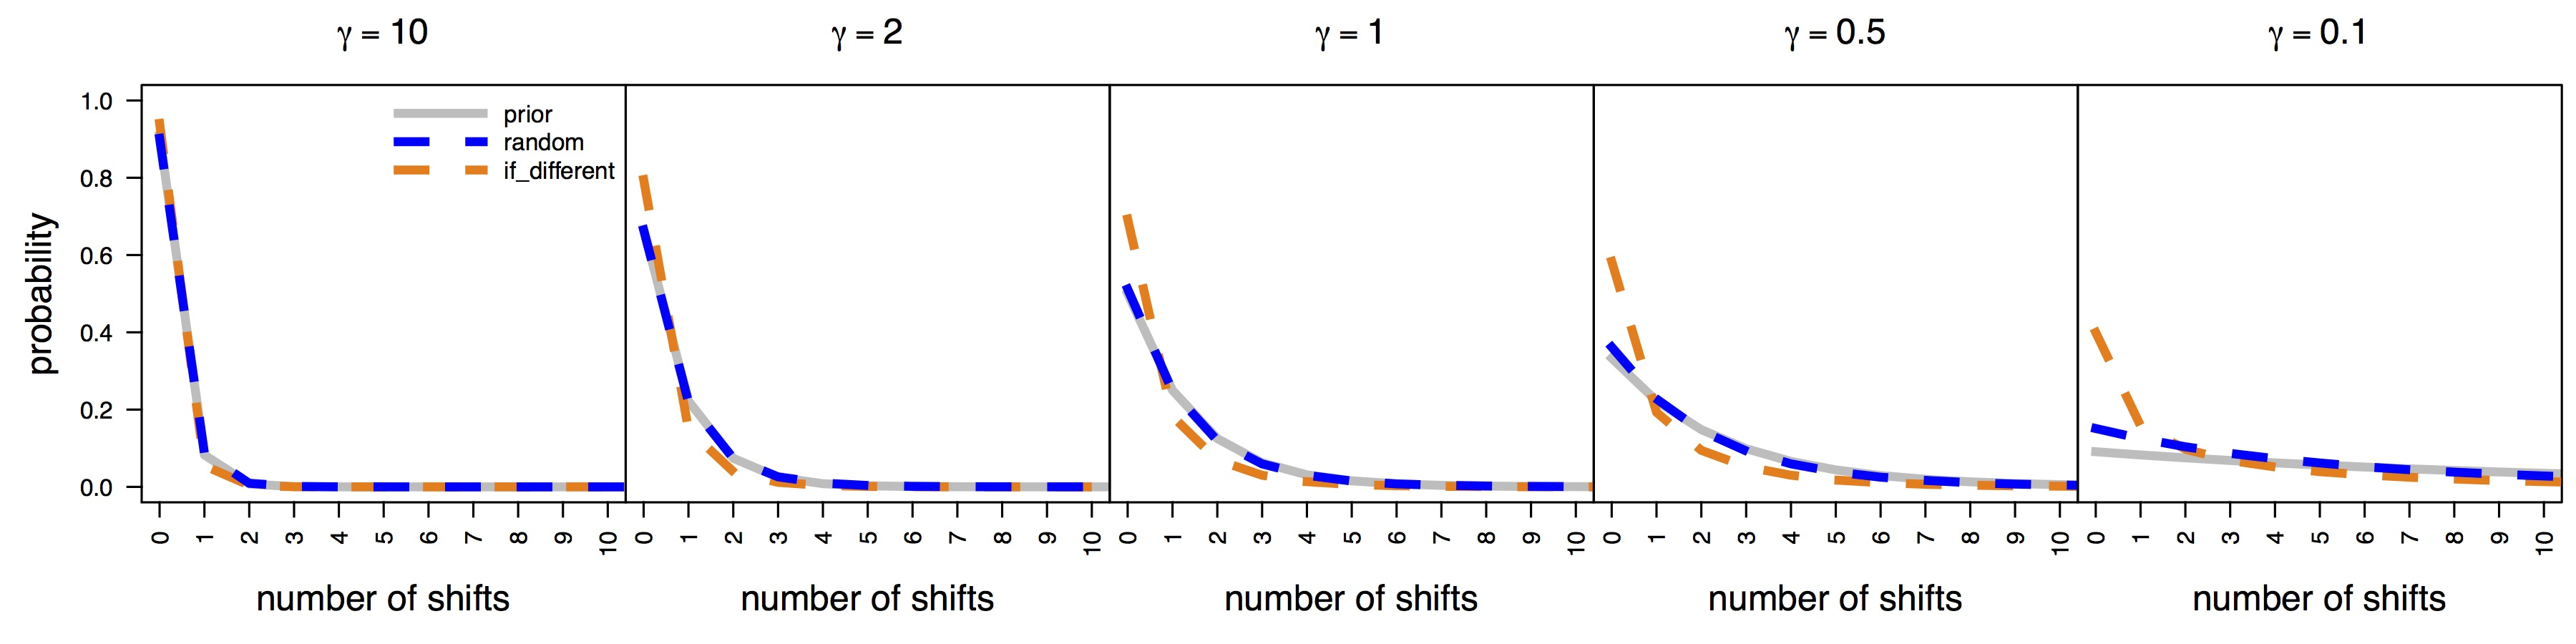 "Figure 4. Comparison of combineExtinctionAtNodes options and the prior distribution on the number of rate shifts for simulated constant-rate trees. BAMM (v.2.5) exhibits strong prior sensitivity under the ""random"" option which randomly picks the extinction probability of the left or right daughter lineages. This option corresponds to the behavior of earlier versions of BAMM and that used for our analyses in Moore et al. (2016). The prior sensitivity using the if_different option—which is theoretically invalid as we describe above—is artificually decreased."